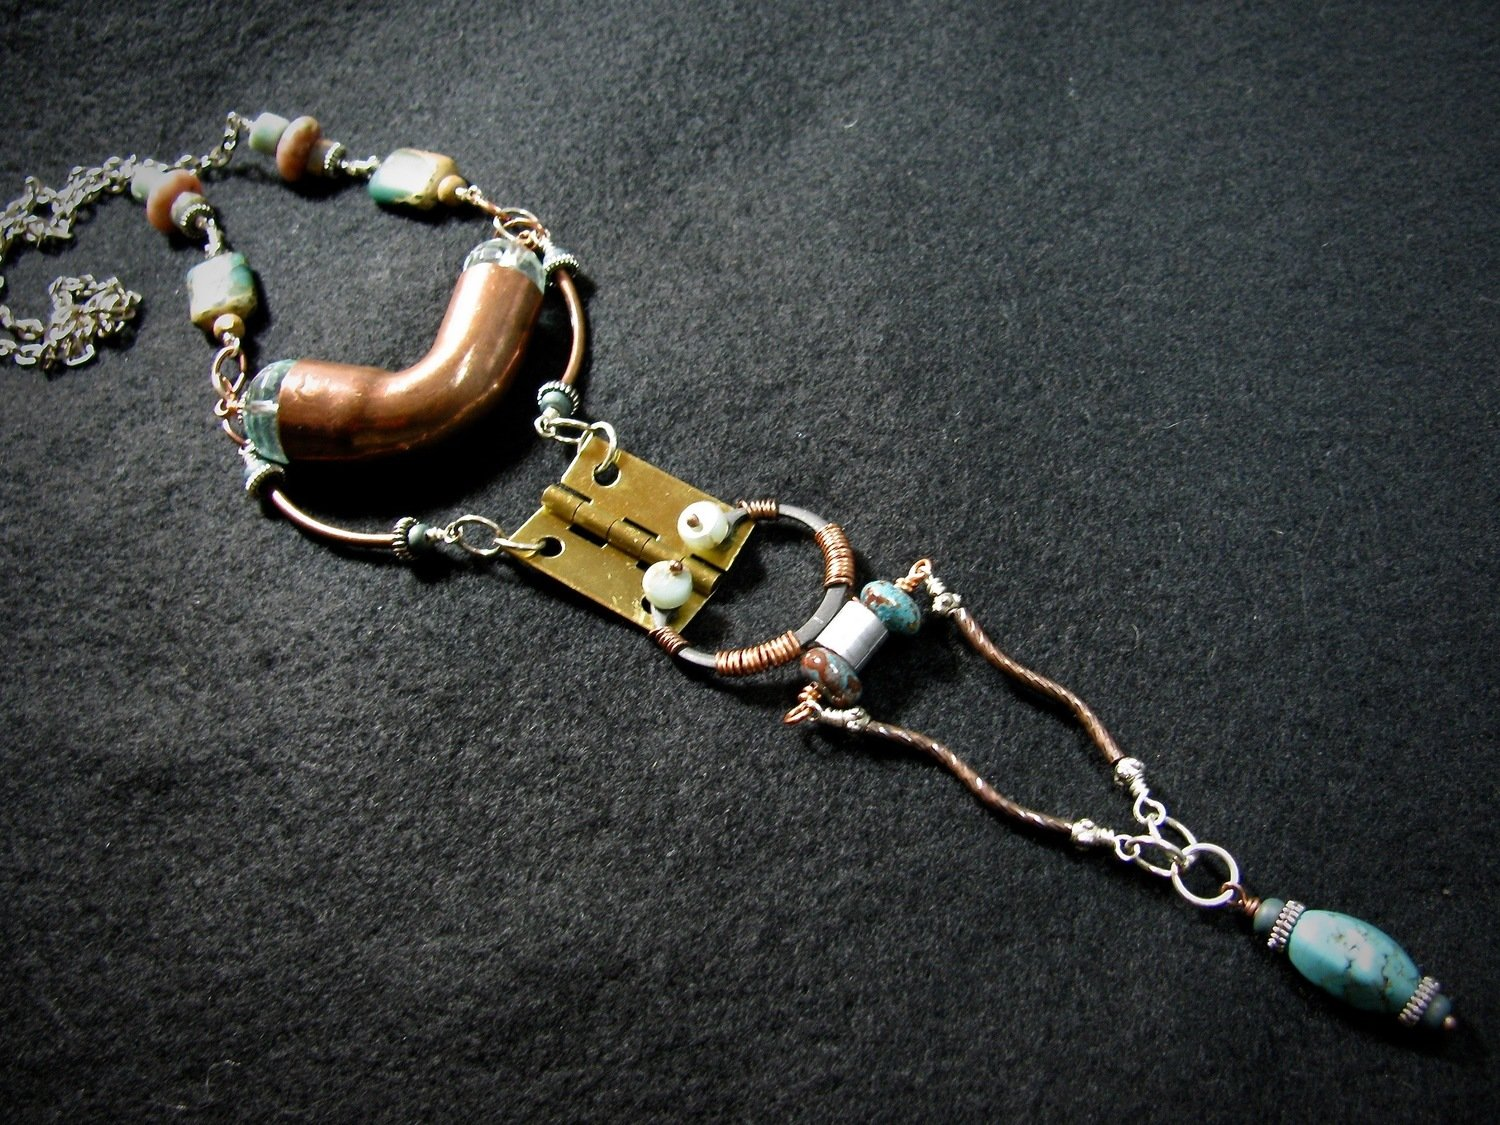 Hardware Necklace with Pipe and Hinge